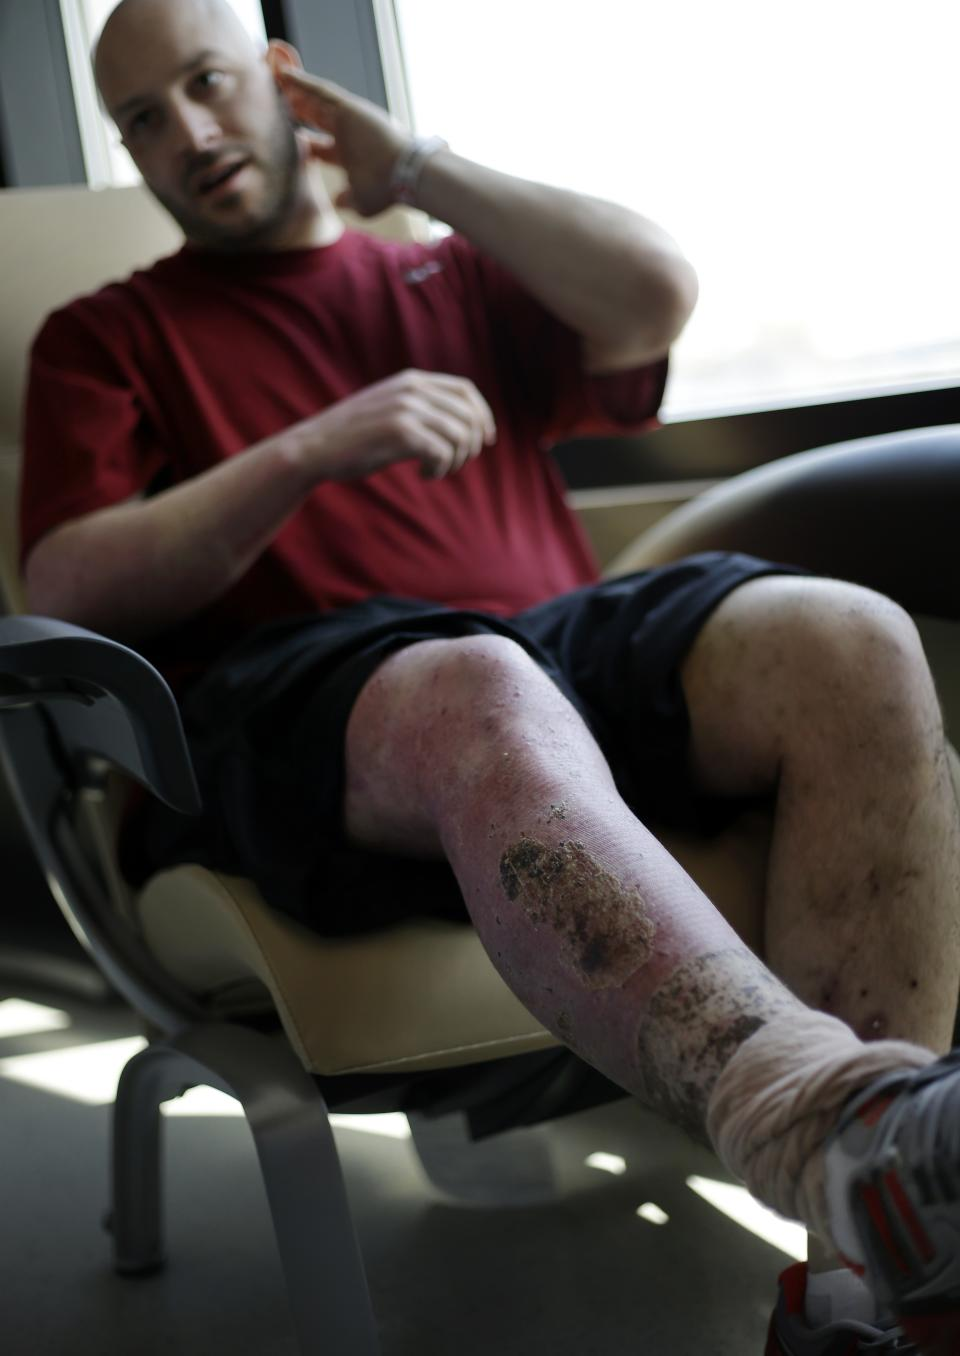 Boston Marathon bombing victim James Costello speaks about his injuries at Spaulding Rehabilitation Hospital in Boston's Charlestown section, Friday, May 10, 2013. (AP Photo/Elise Amendola)